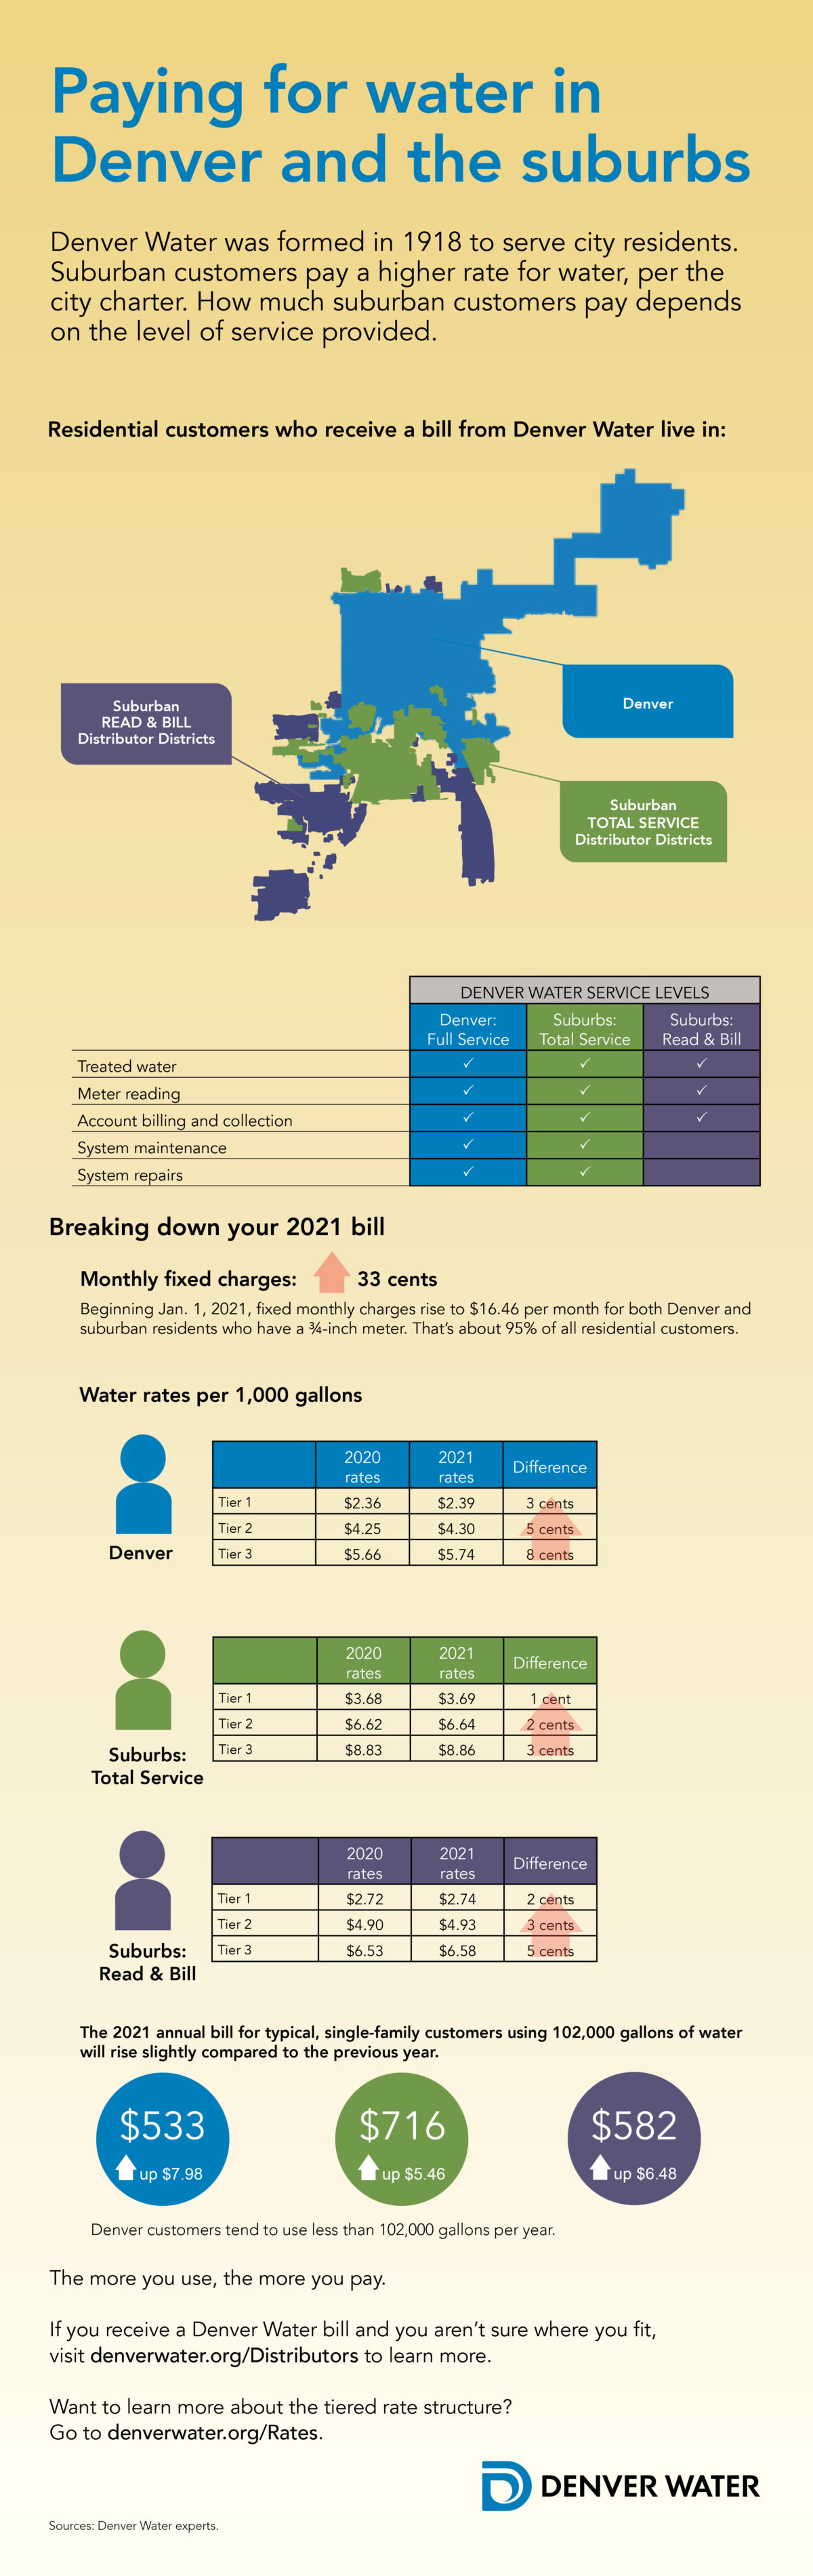 Paying for water in Denver and the suburbs infographic.